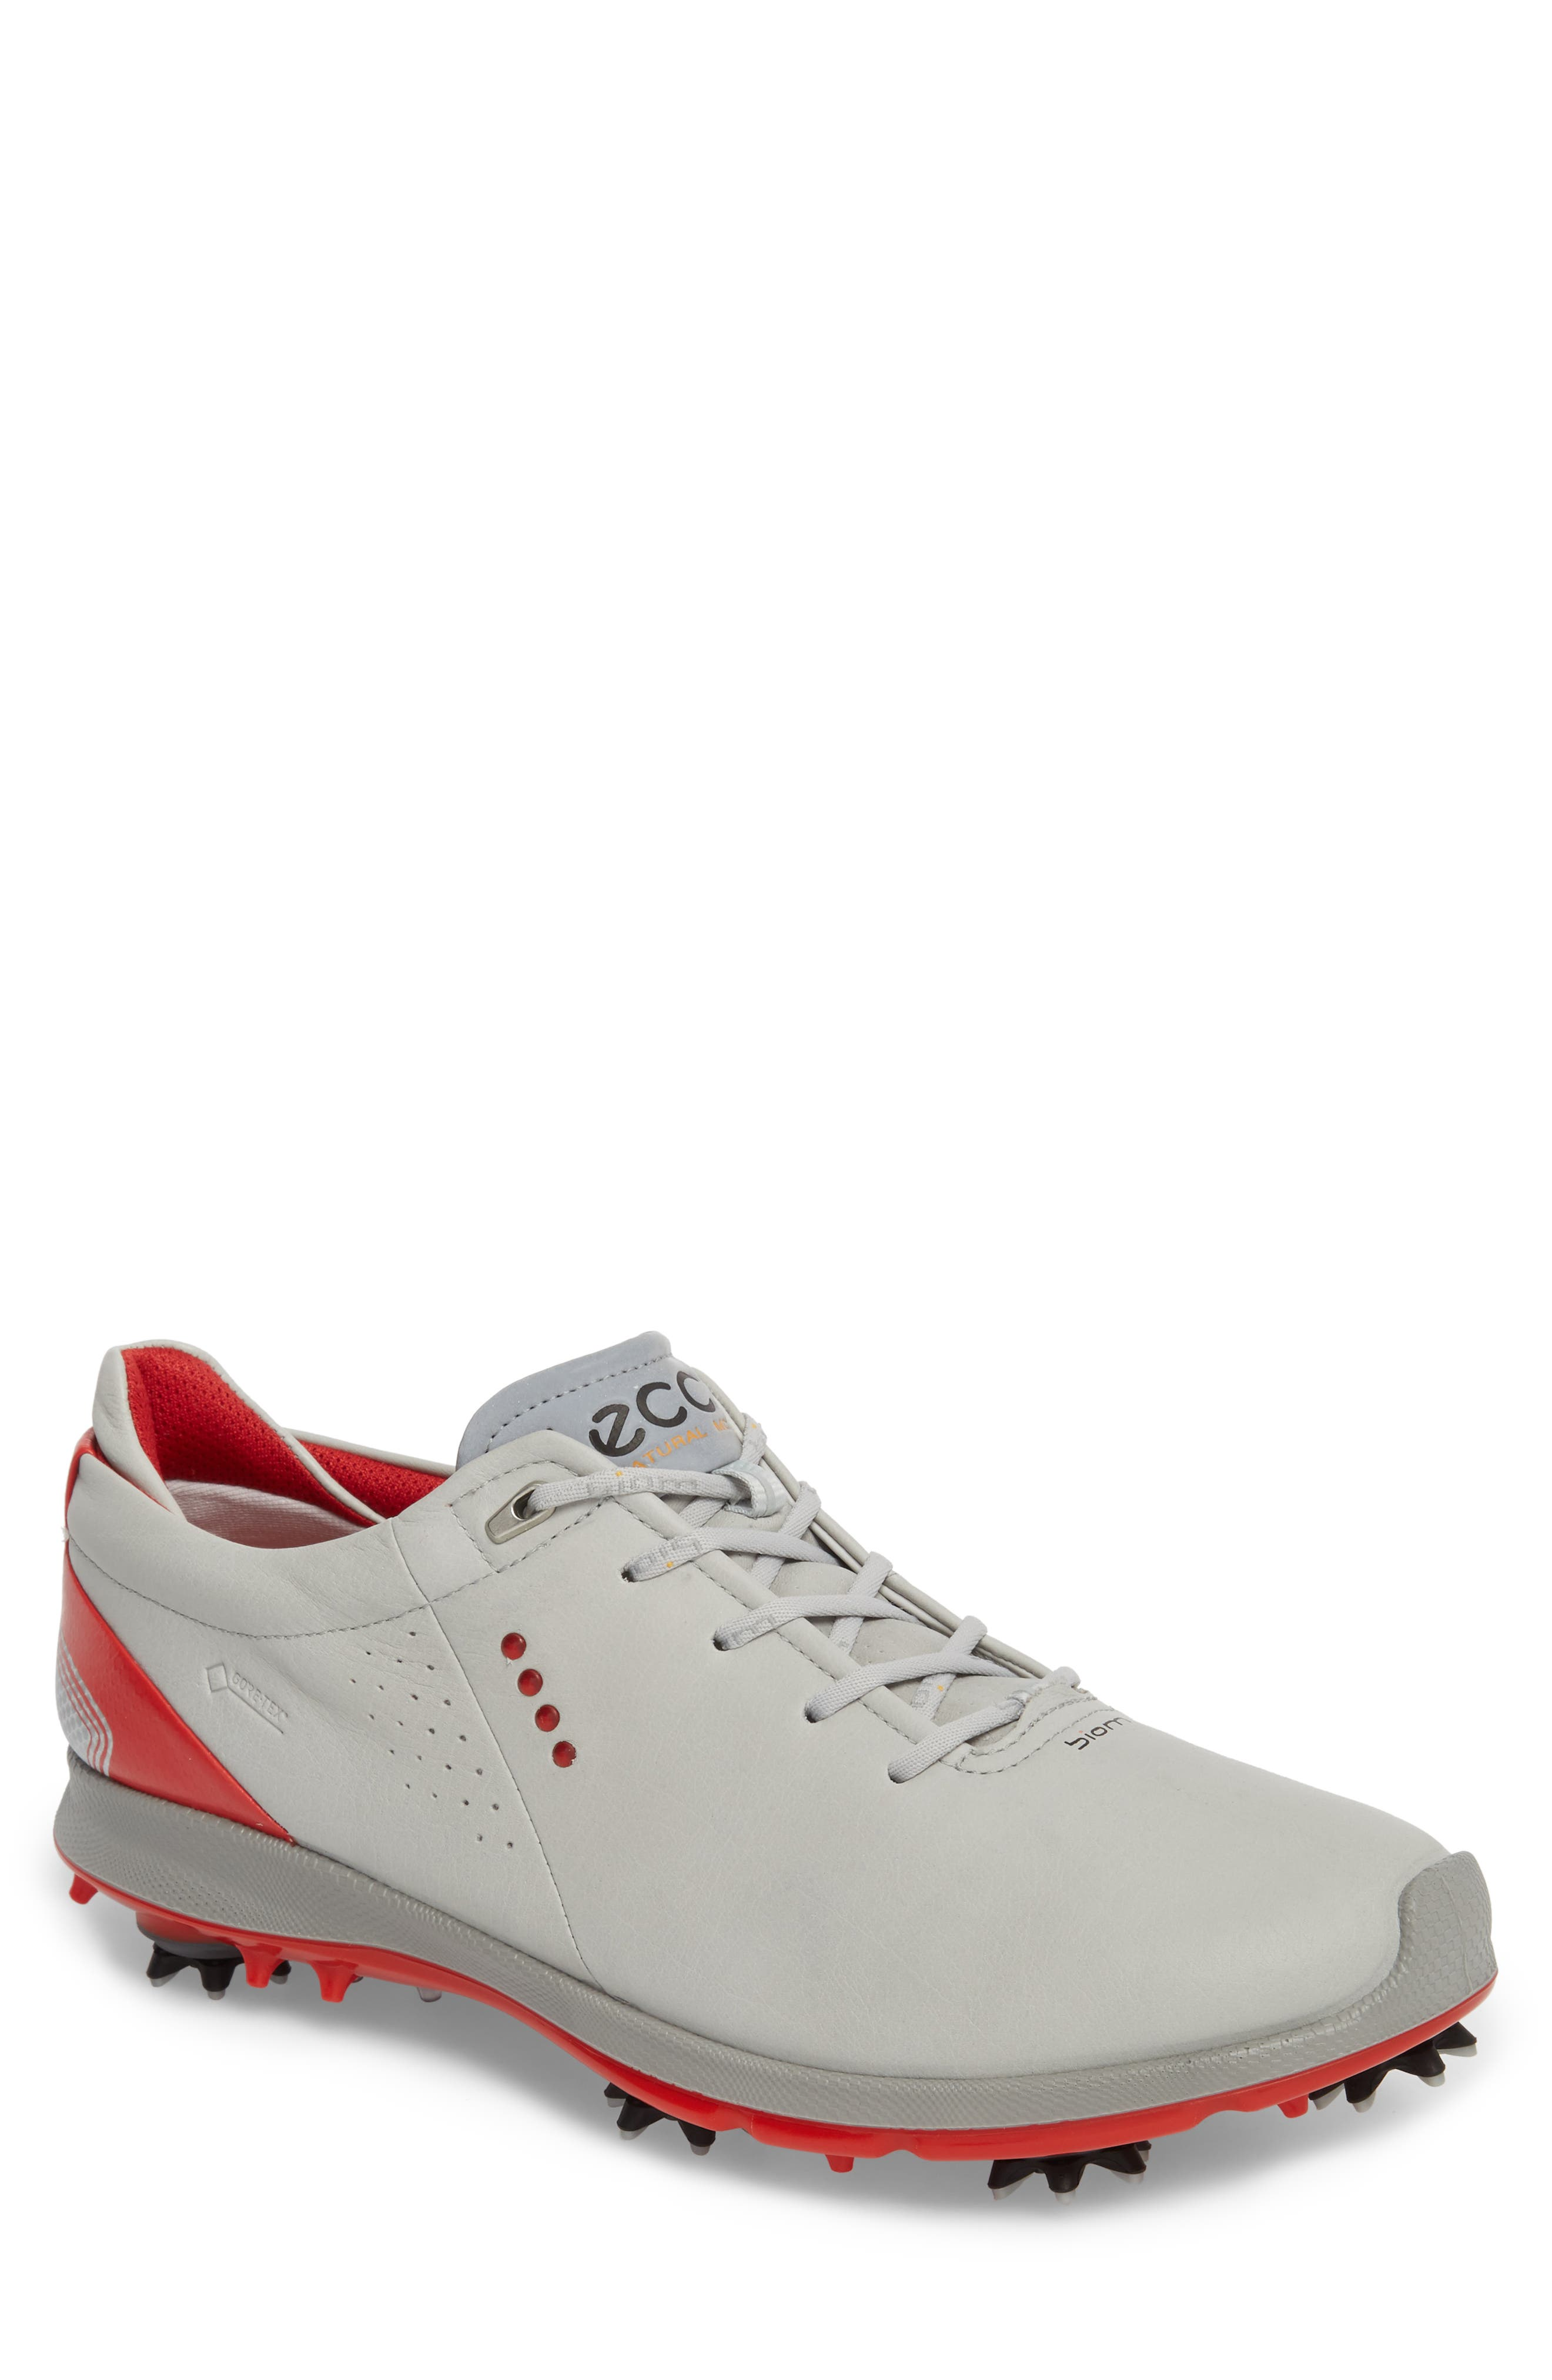 BIOM G 2 Free Gore-Tex<sup>®</sup> Golf Shoe,                         Main,                         color, CONCRETE/ SCARLET LEATHER